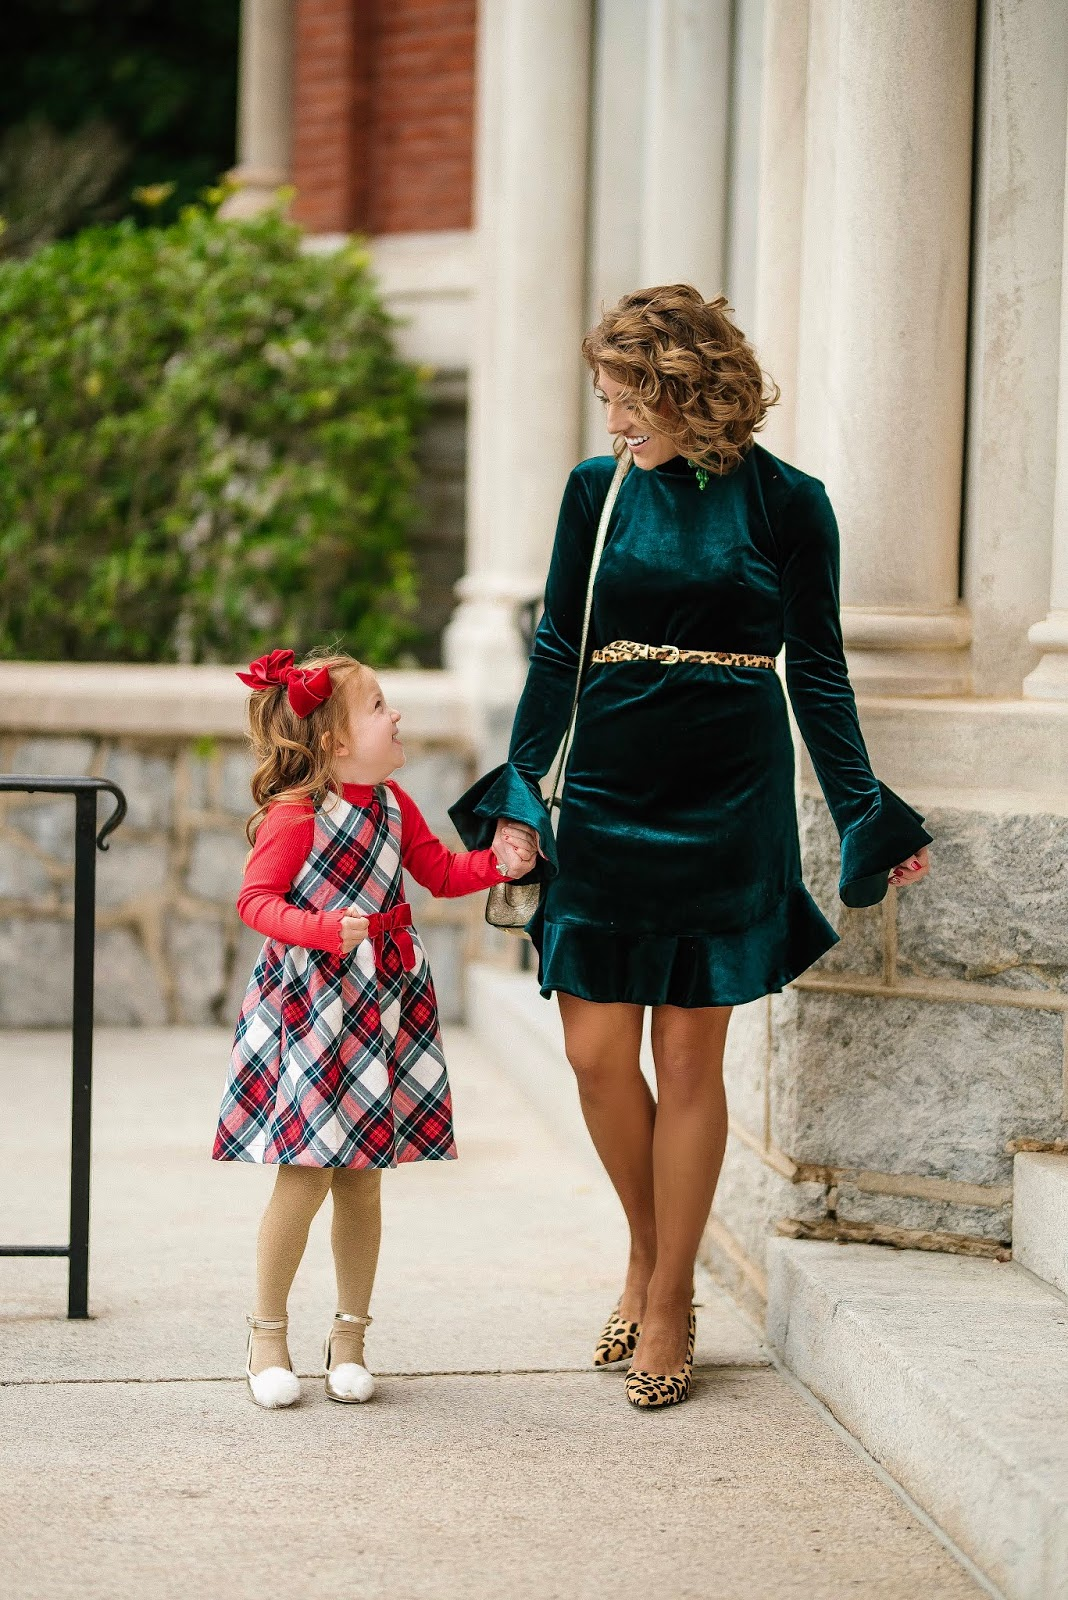 Mommy & Me Festive Looks: Plaid & Green Velvet - Something Delightful Blog